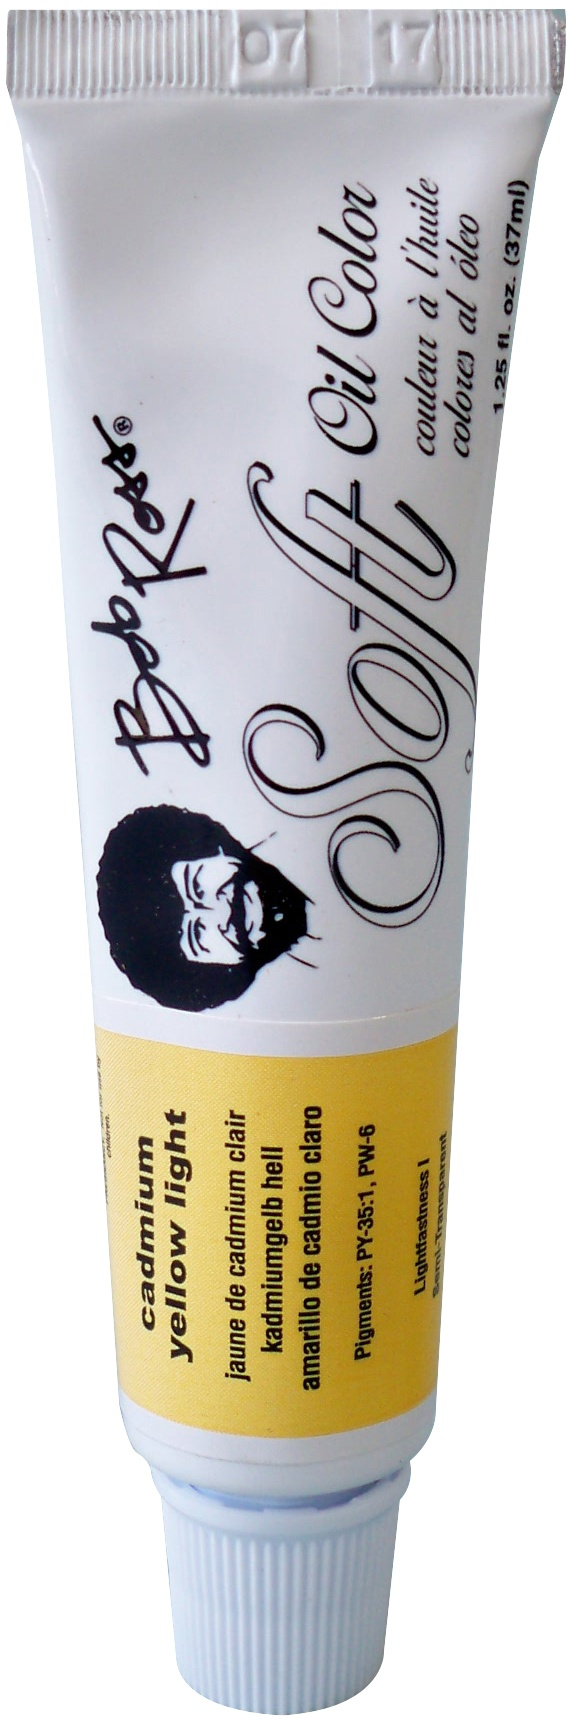 Bob Ross Soft Oil Color Paint 37ml